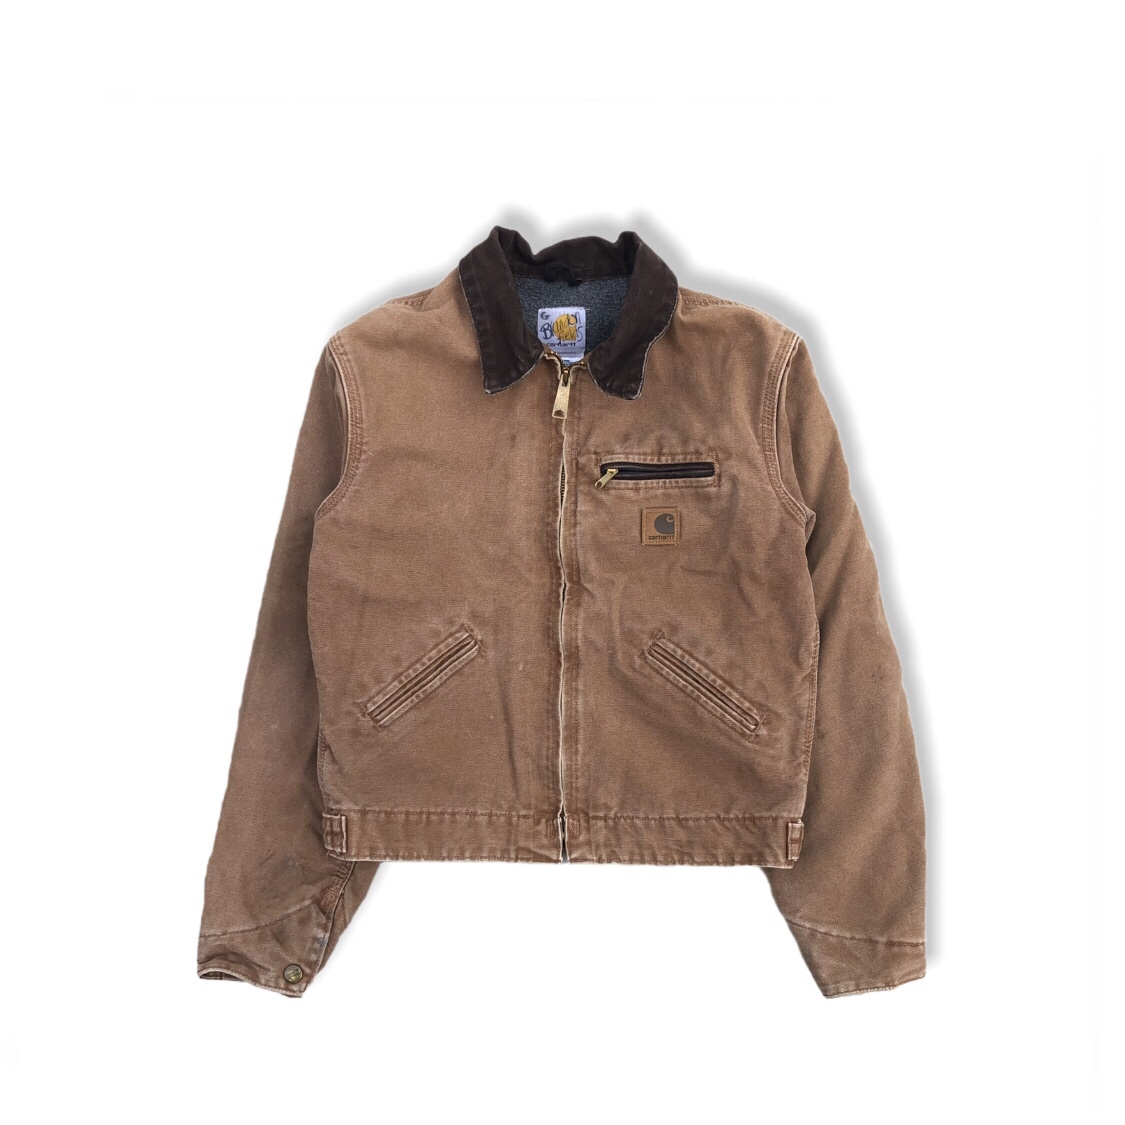 Product Image 1 - Vintage Carhartt Jacket • Made in